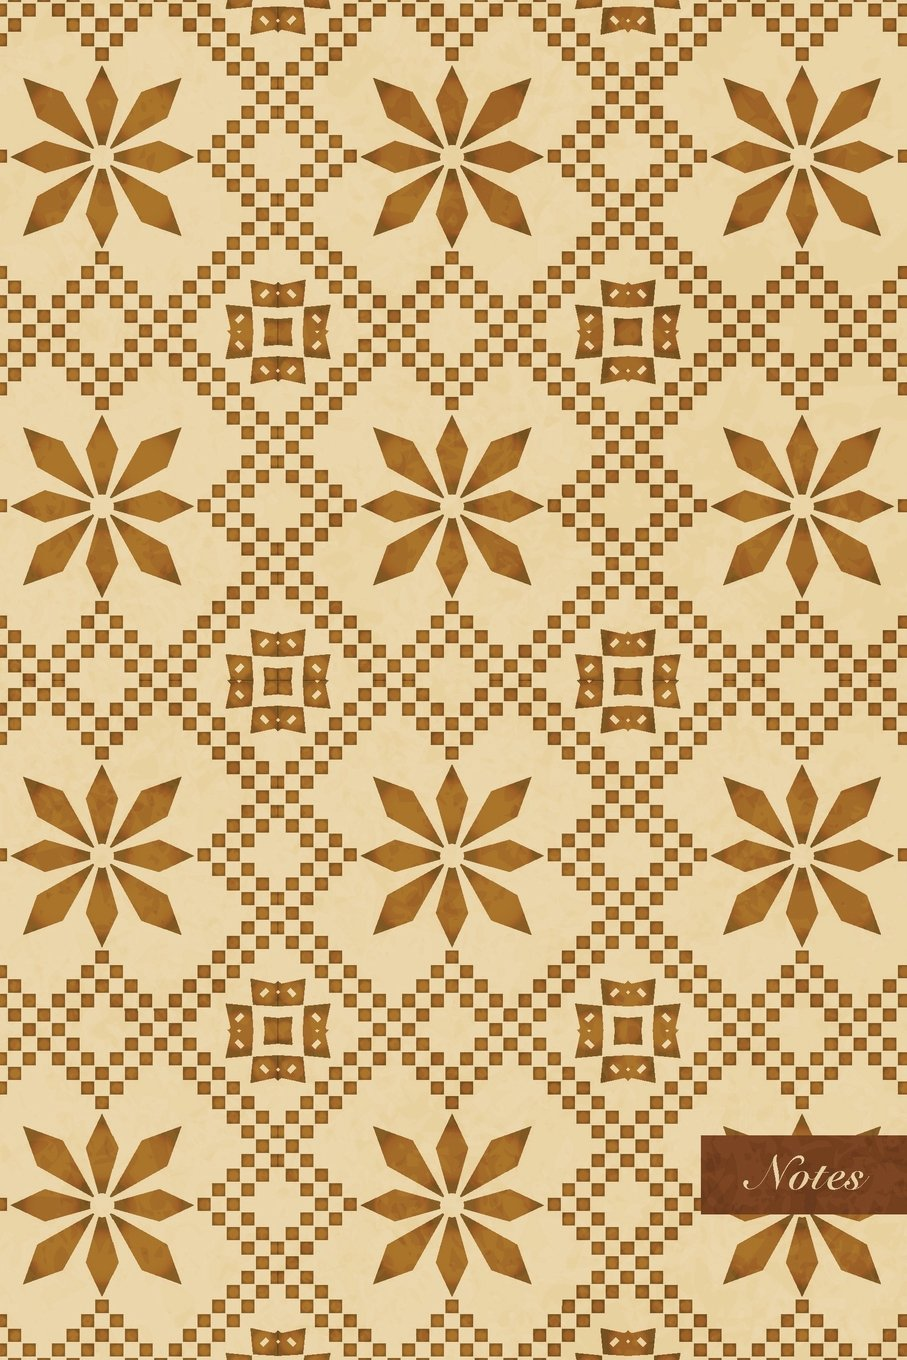 "Download Notes: 6""x9"" Unruled Blank Notebook - Mosaic Pixel Geometry Check Cross Frame Chain Flower - Retro Brown Worn Out Vintage Seamless Pattern Cover. Matte Softcover And Cream Interior Papers. PDF"